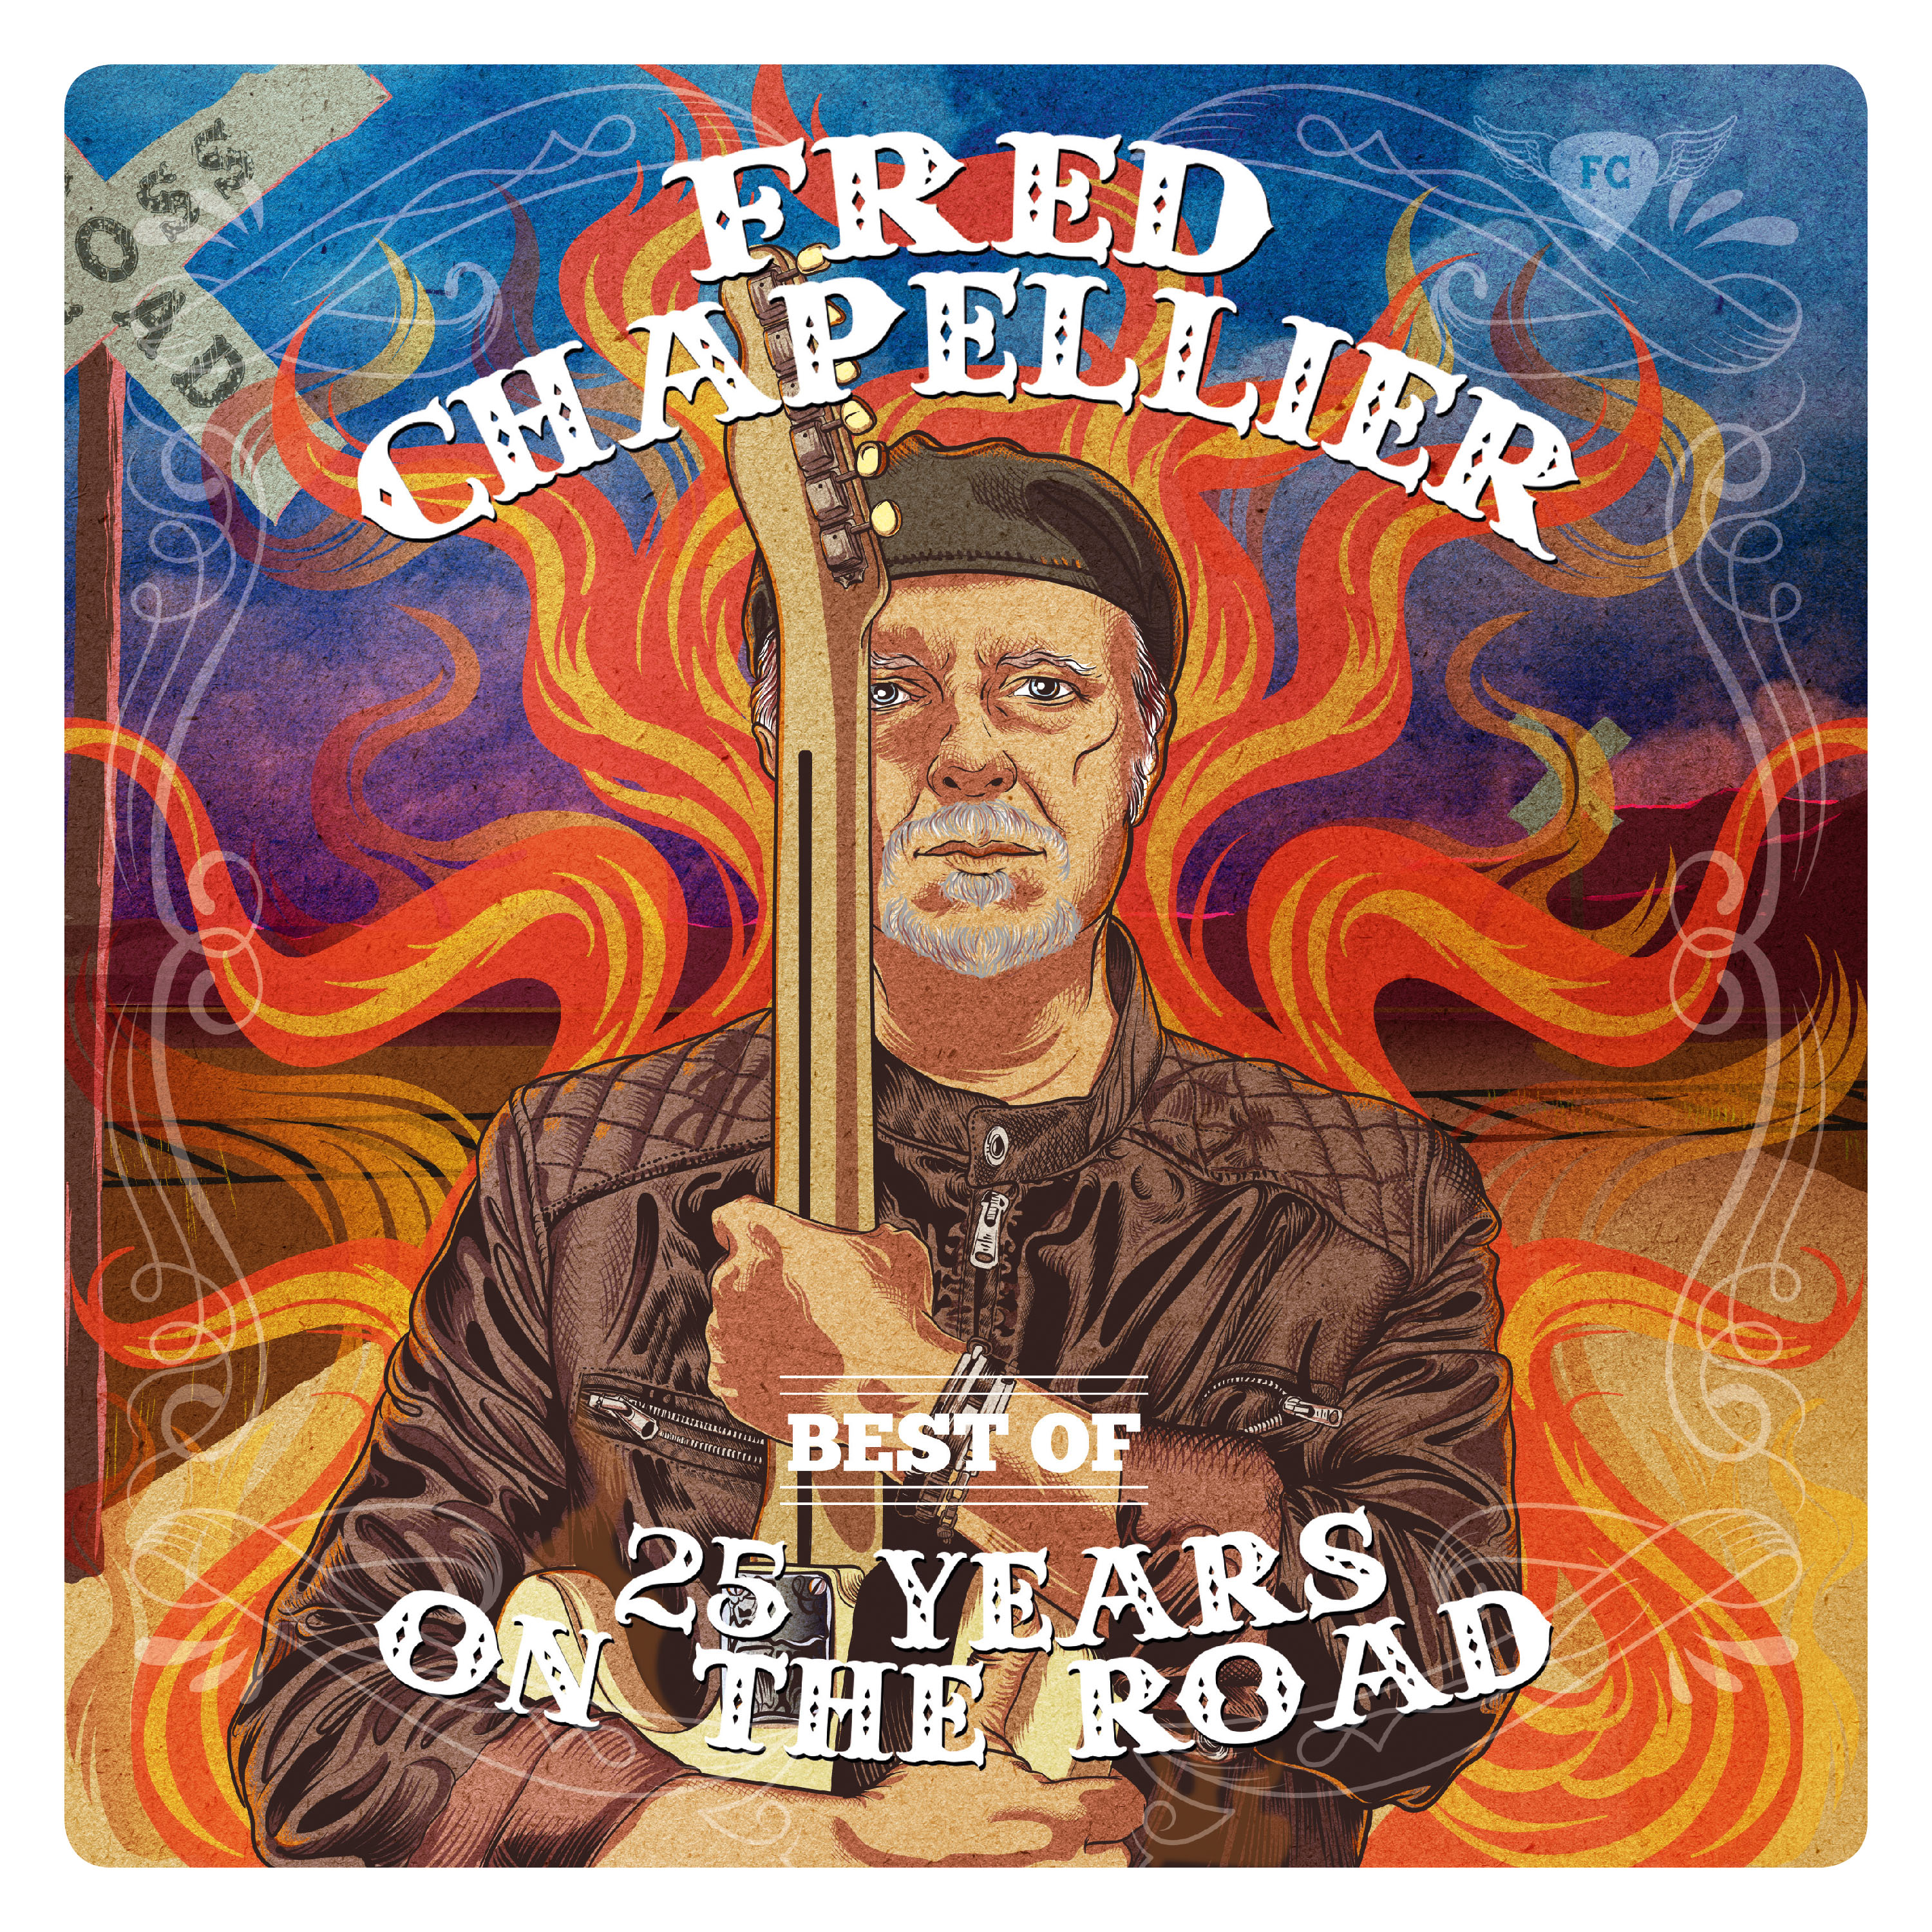 Fred Chapellier - CD BEST OF - 25 YEARS ON THE ROAD